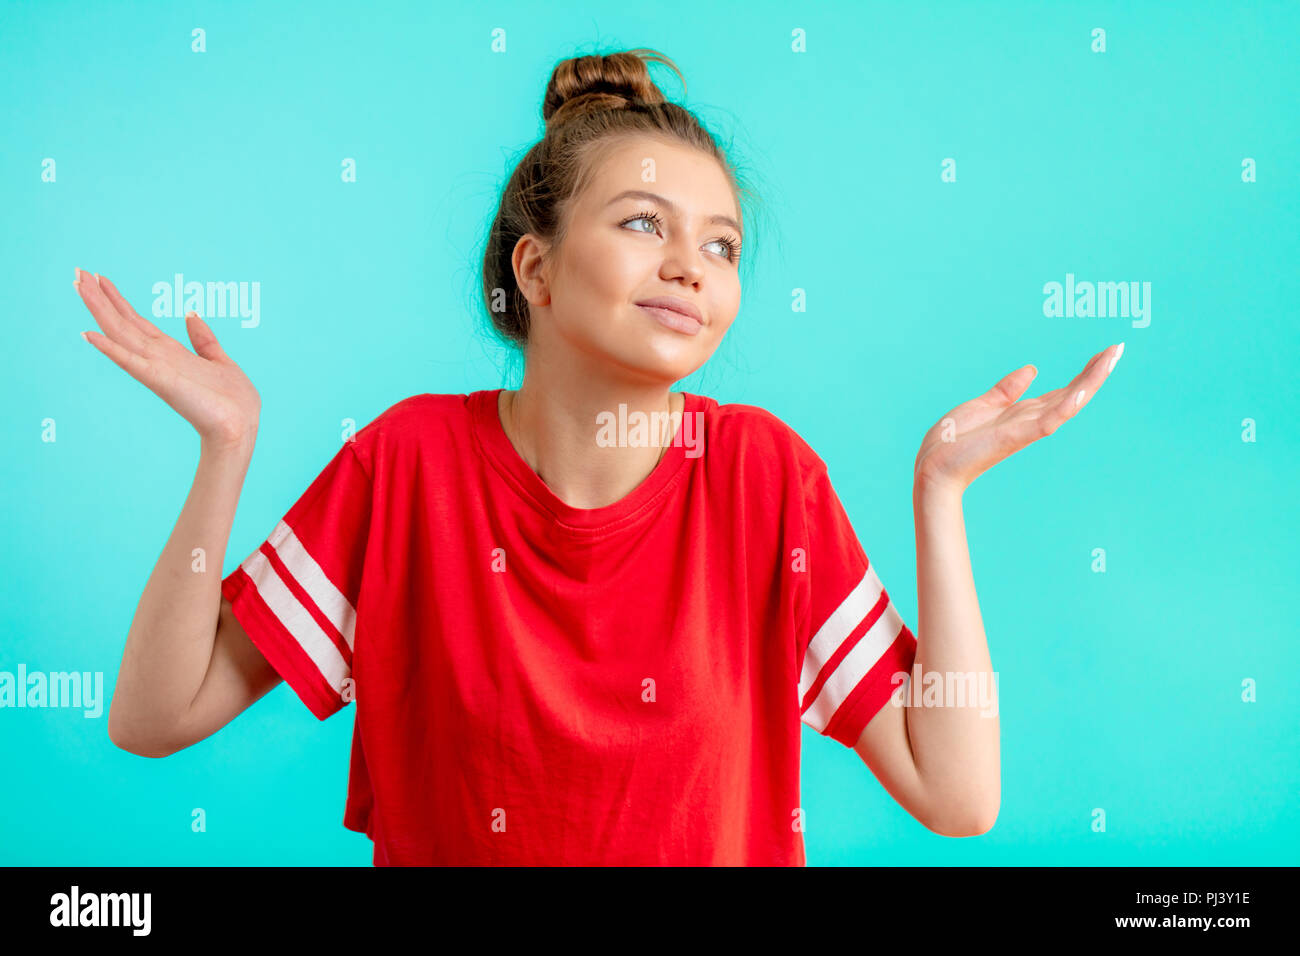 young confused woman in fashion red t-shirt with arms out shrugs shoulders - Stock Image